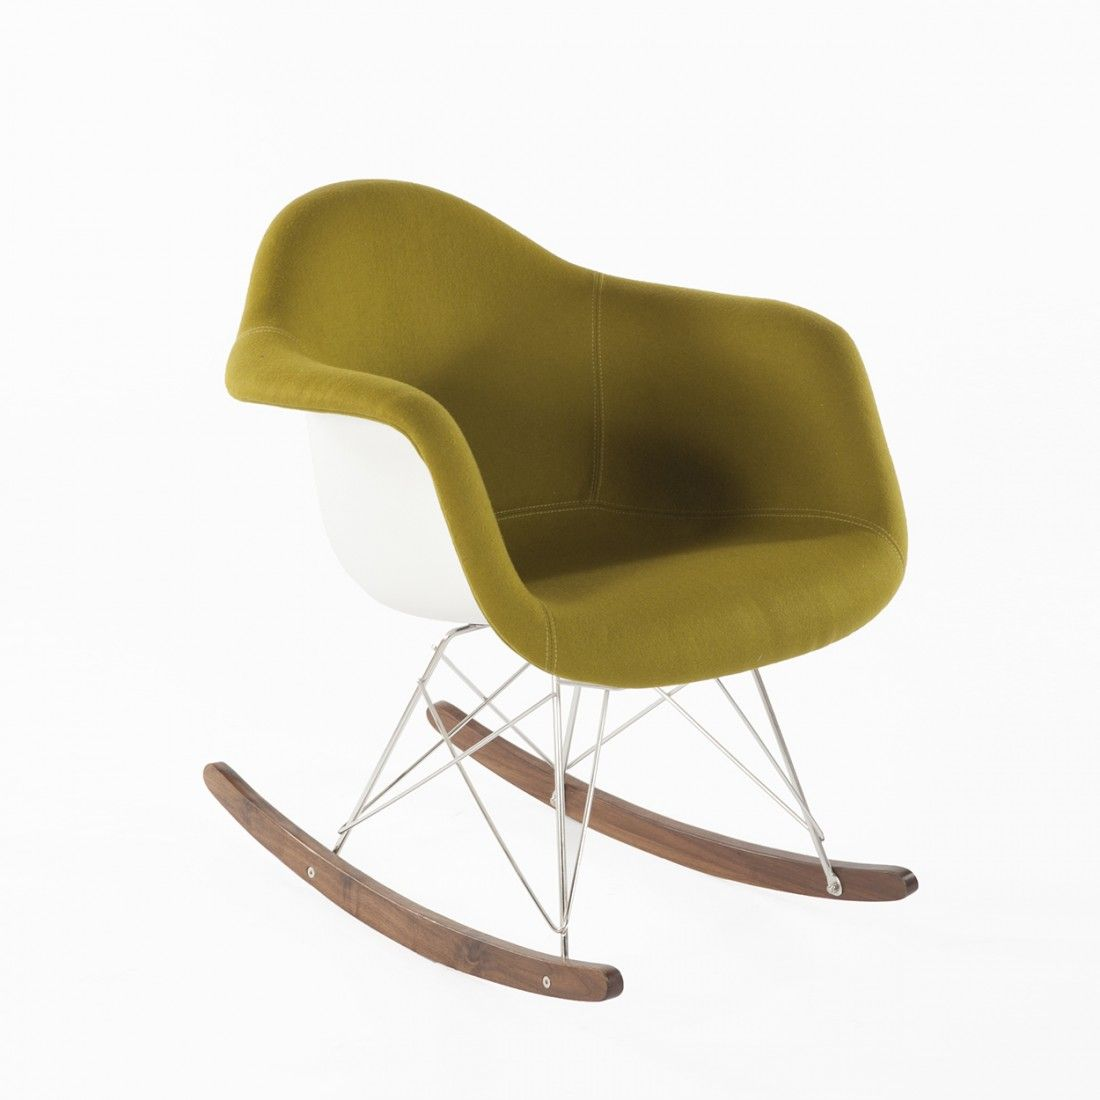 Superb img of Sey Mid Century Walnut Modern Rocking Chair By Chair Golime.co with #5D4D1F color and 1100x1100 pixels